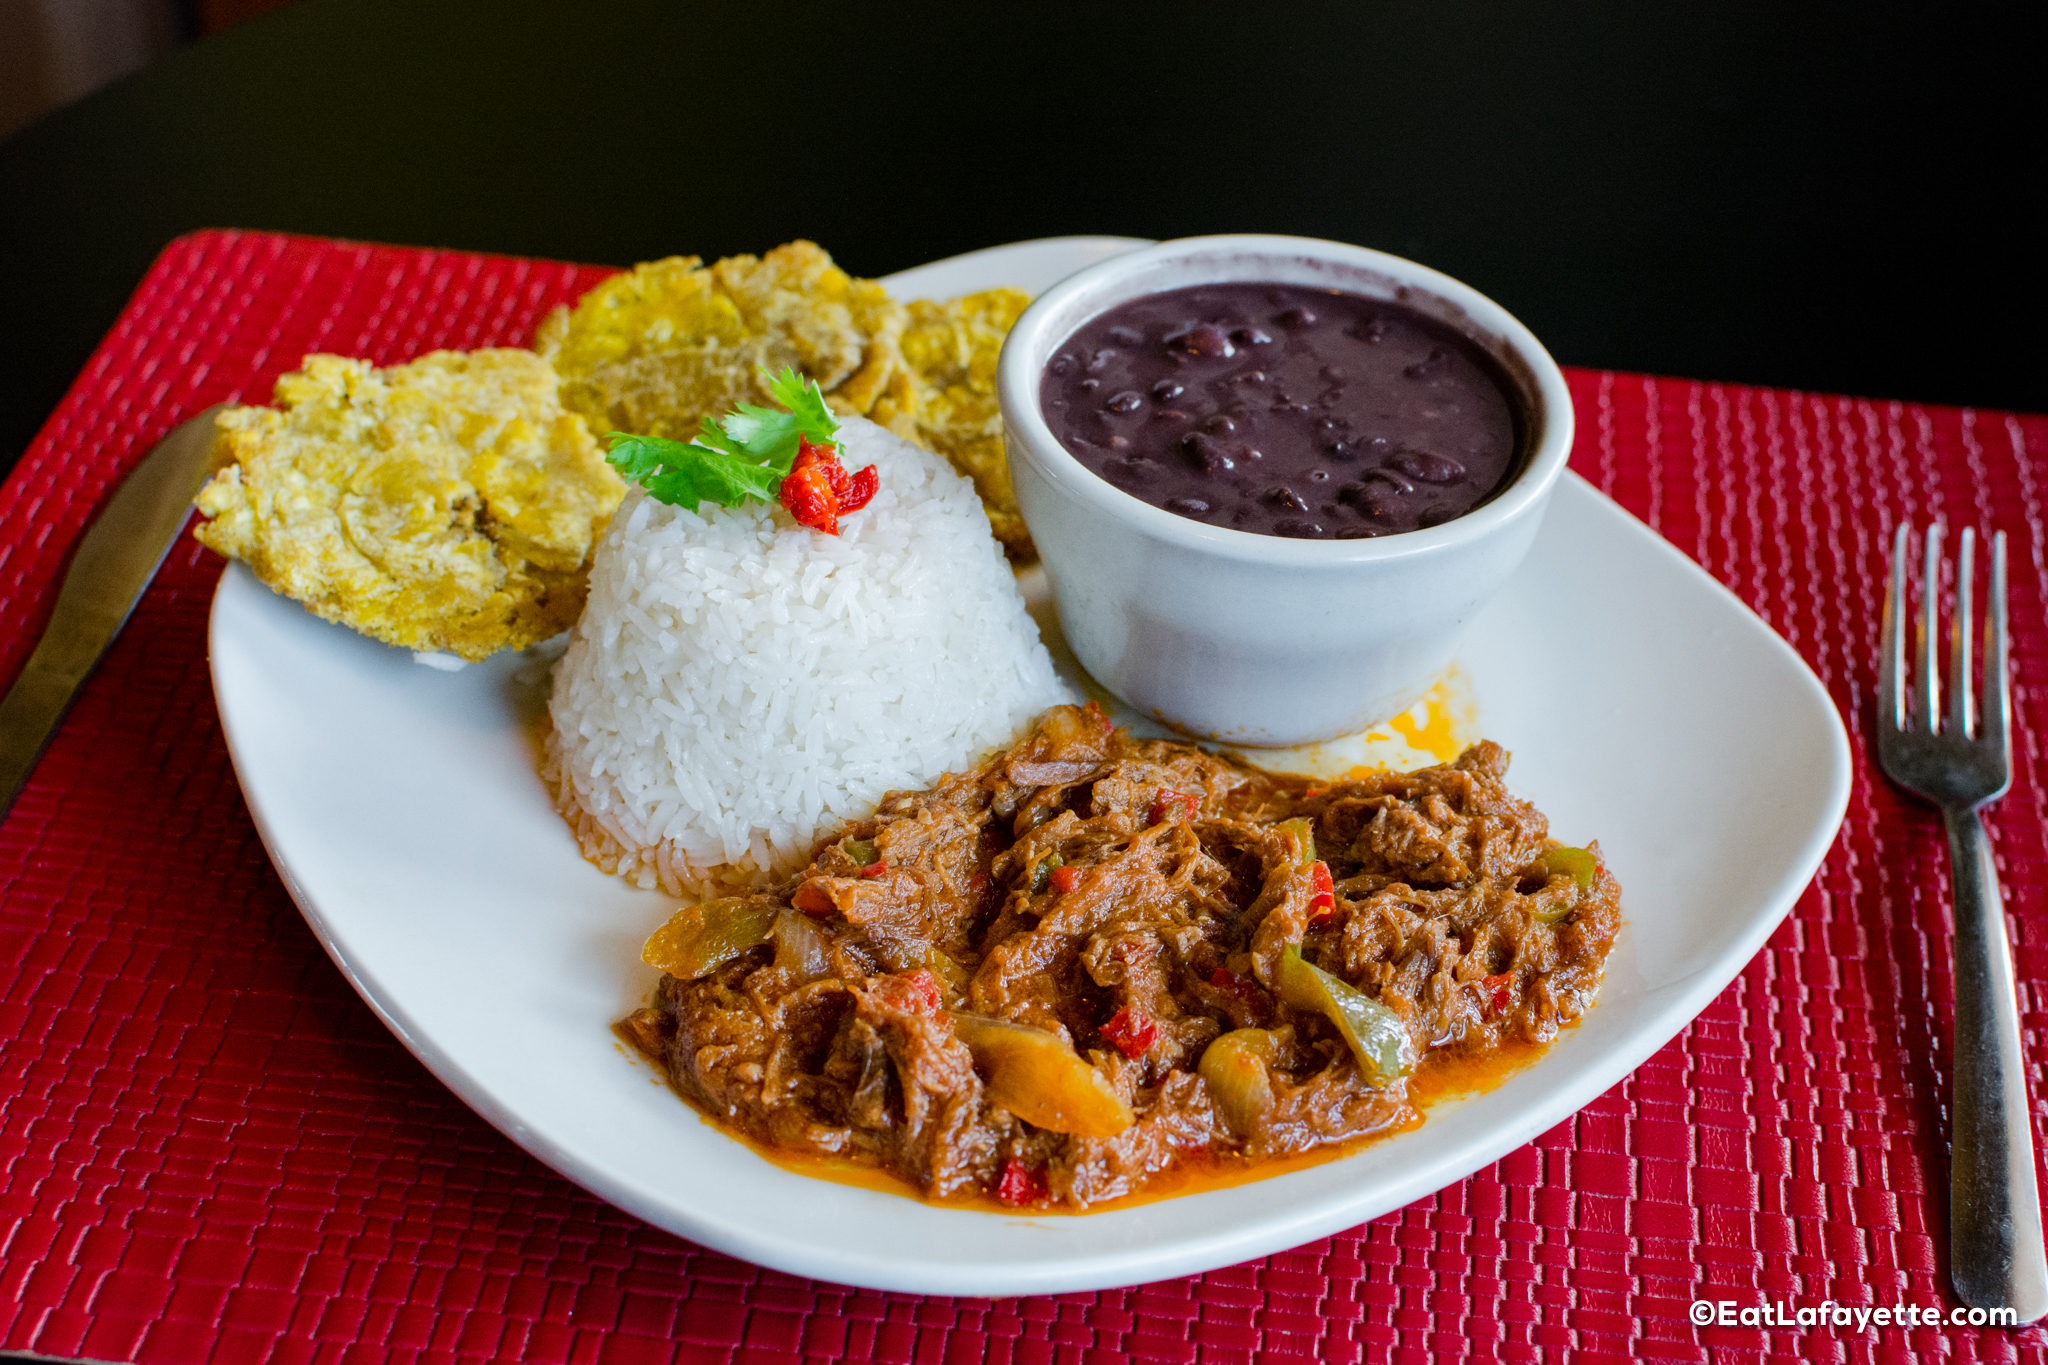 Cafe Habana City Food